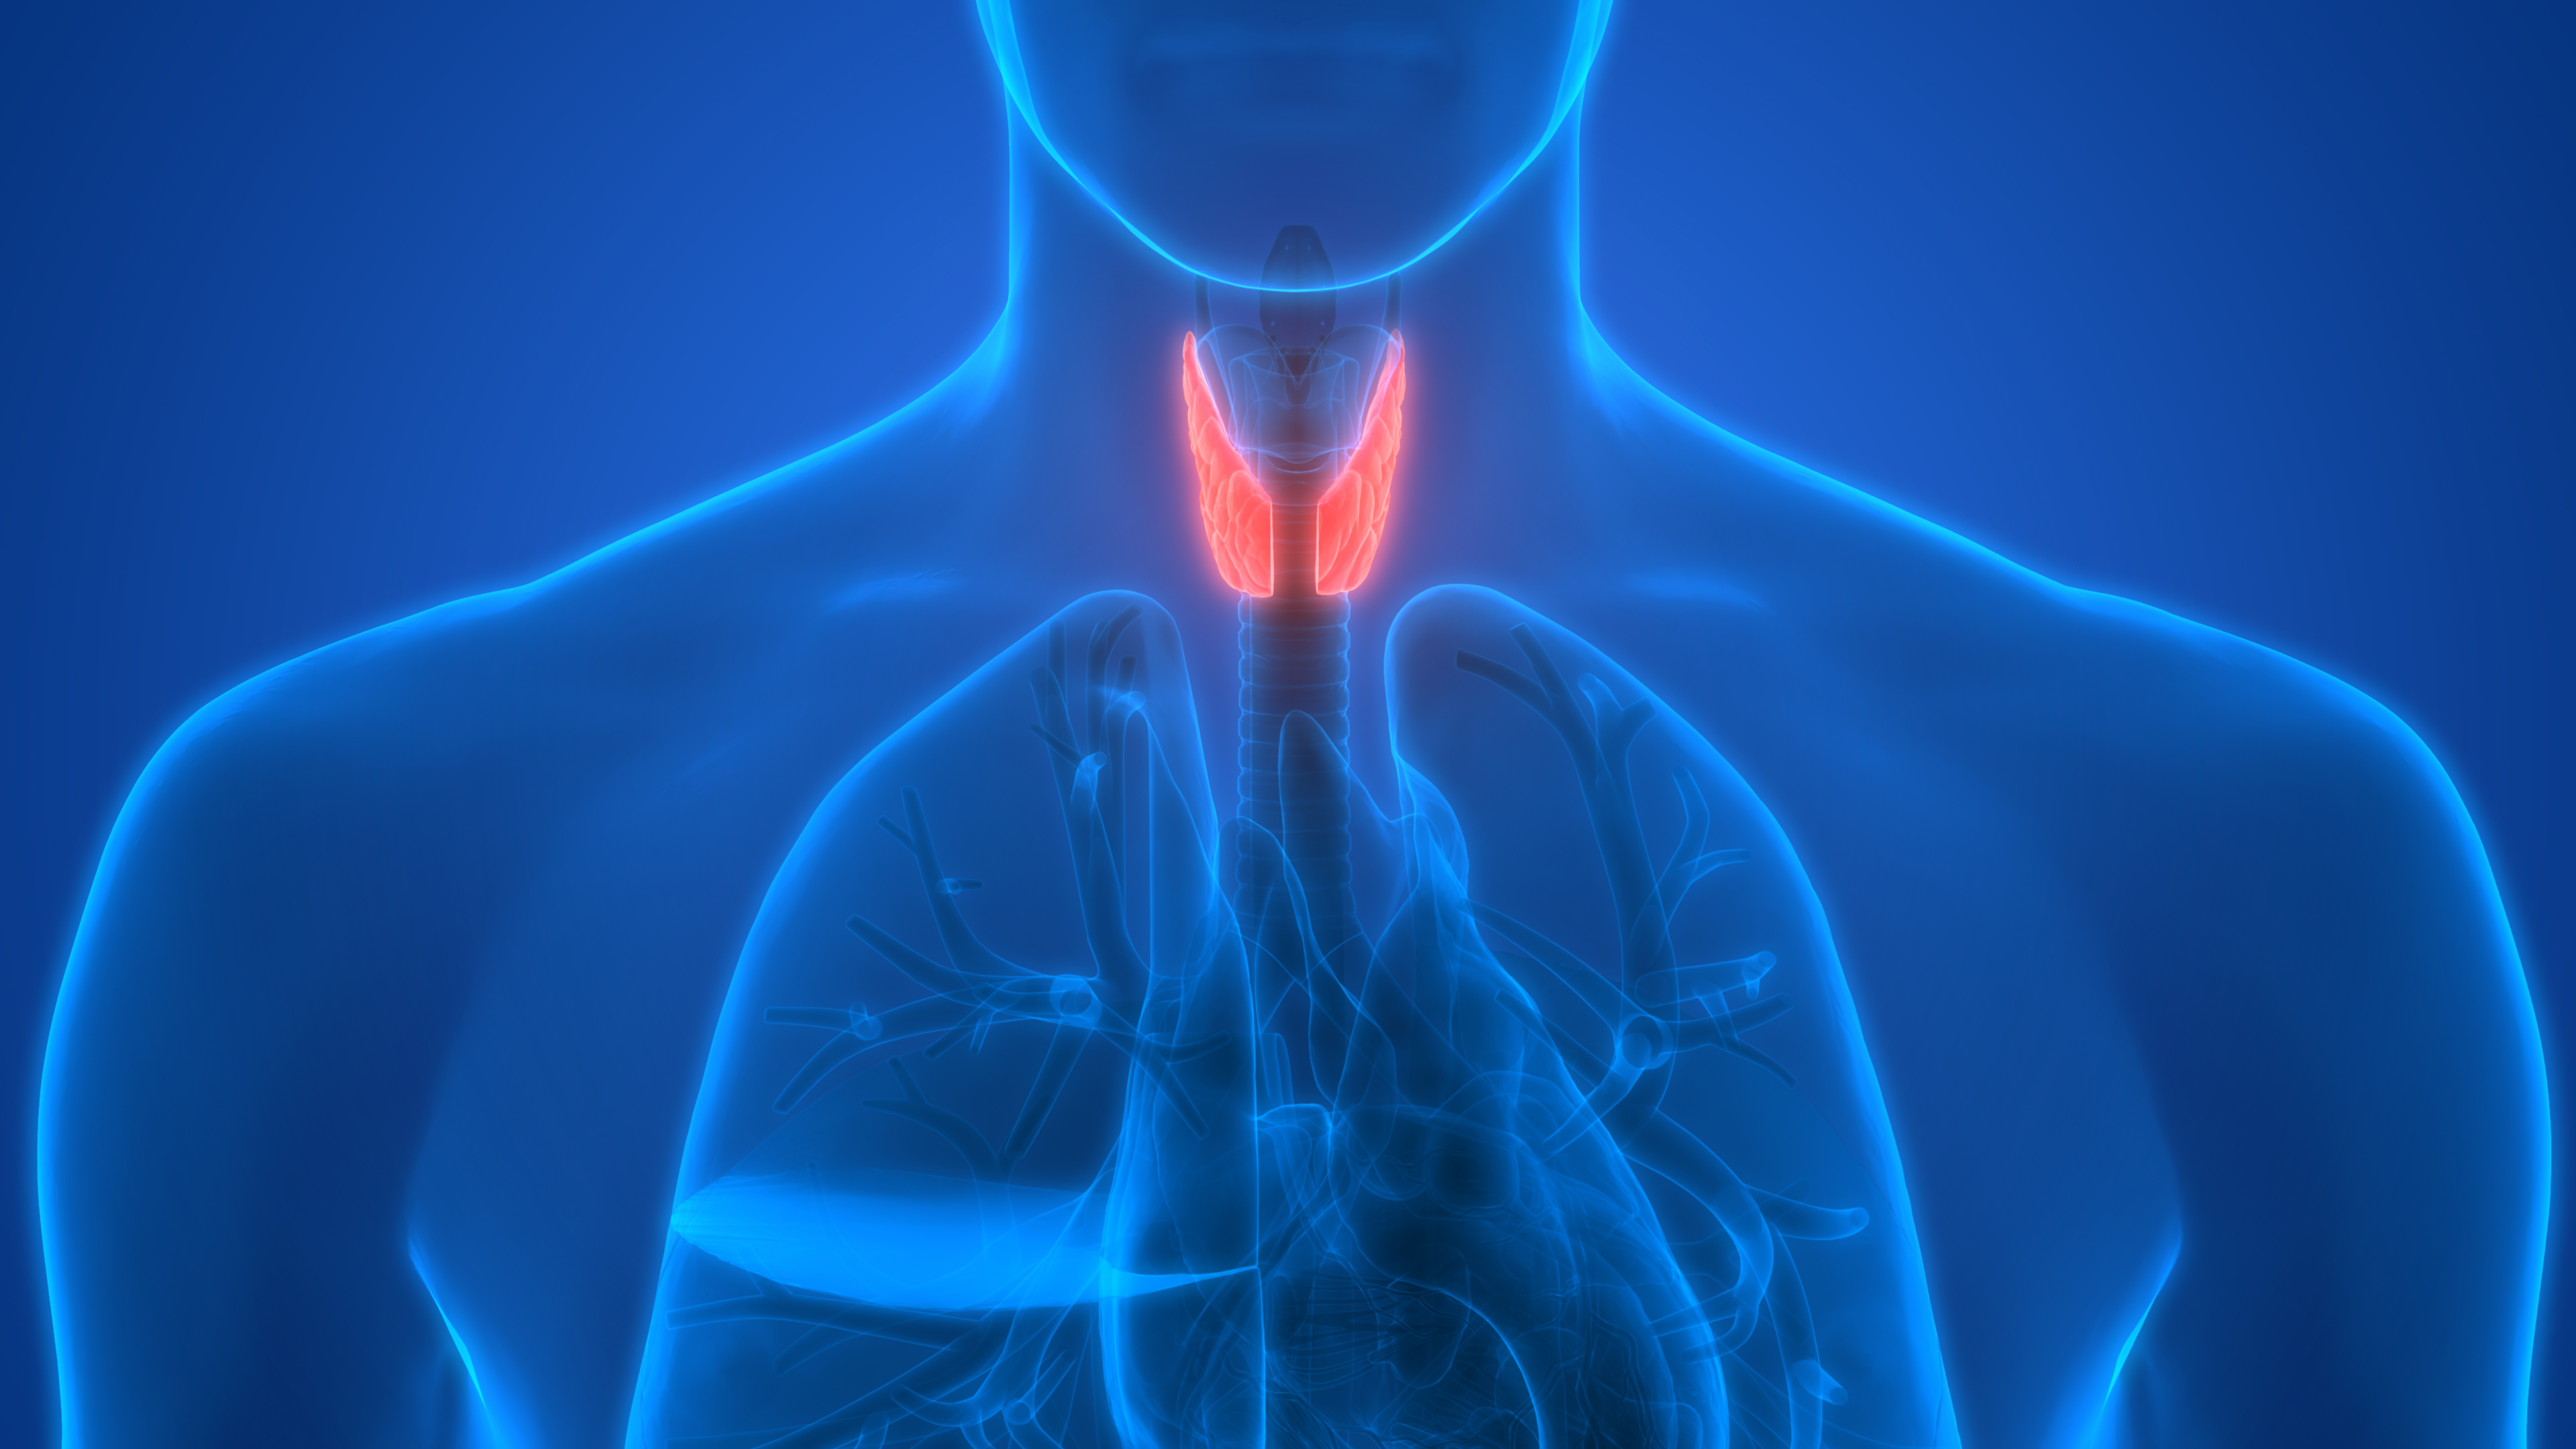 Phase II study shows objective response rate in thyroid cancer